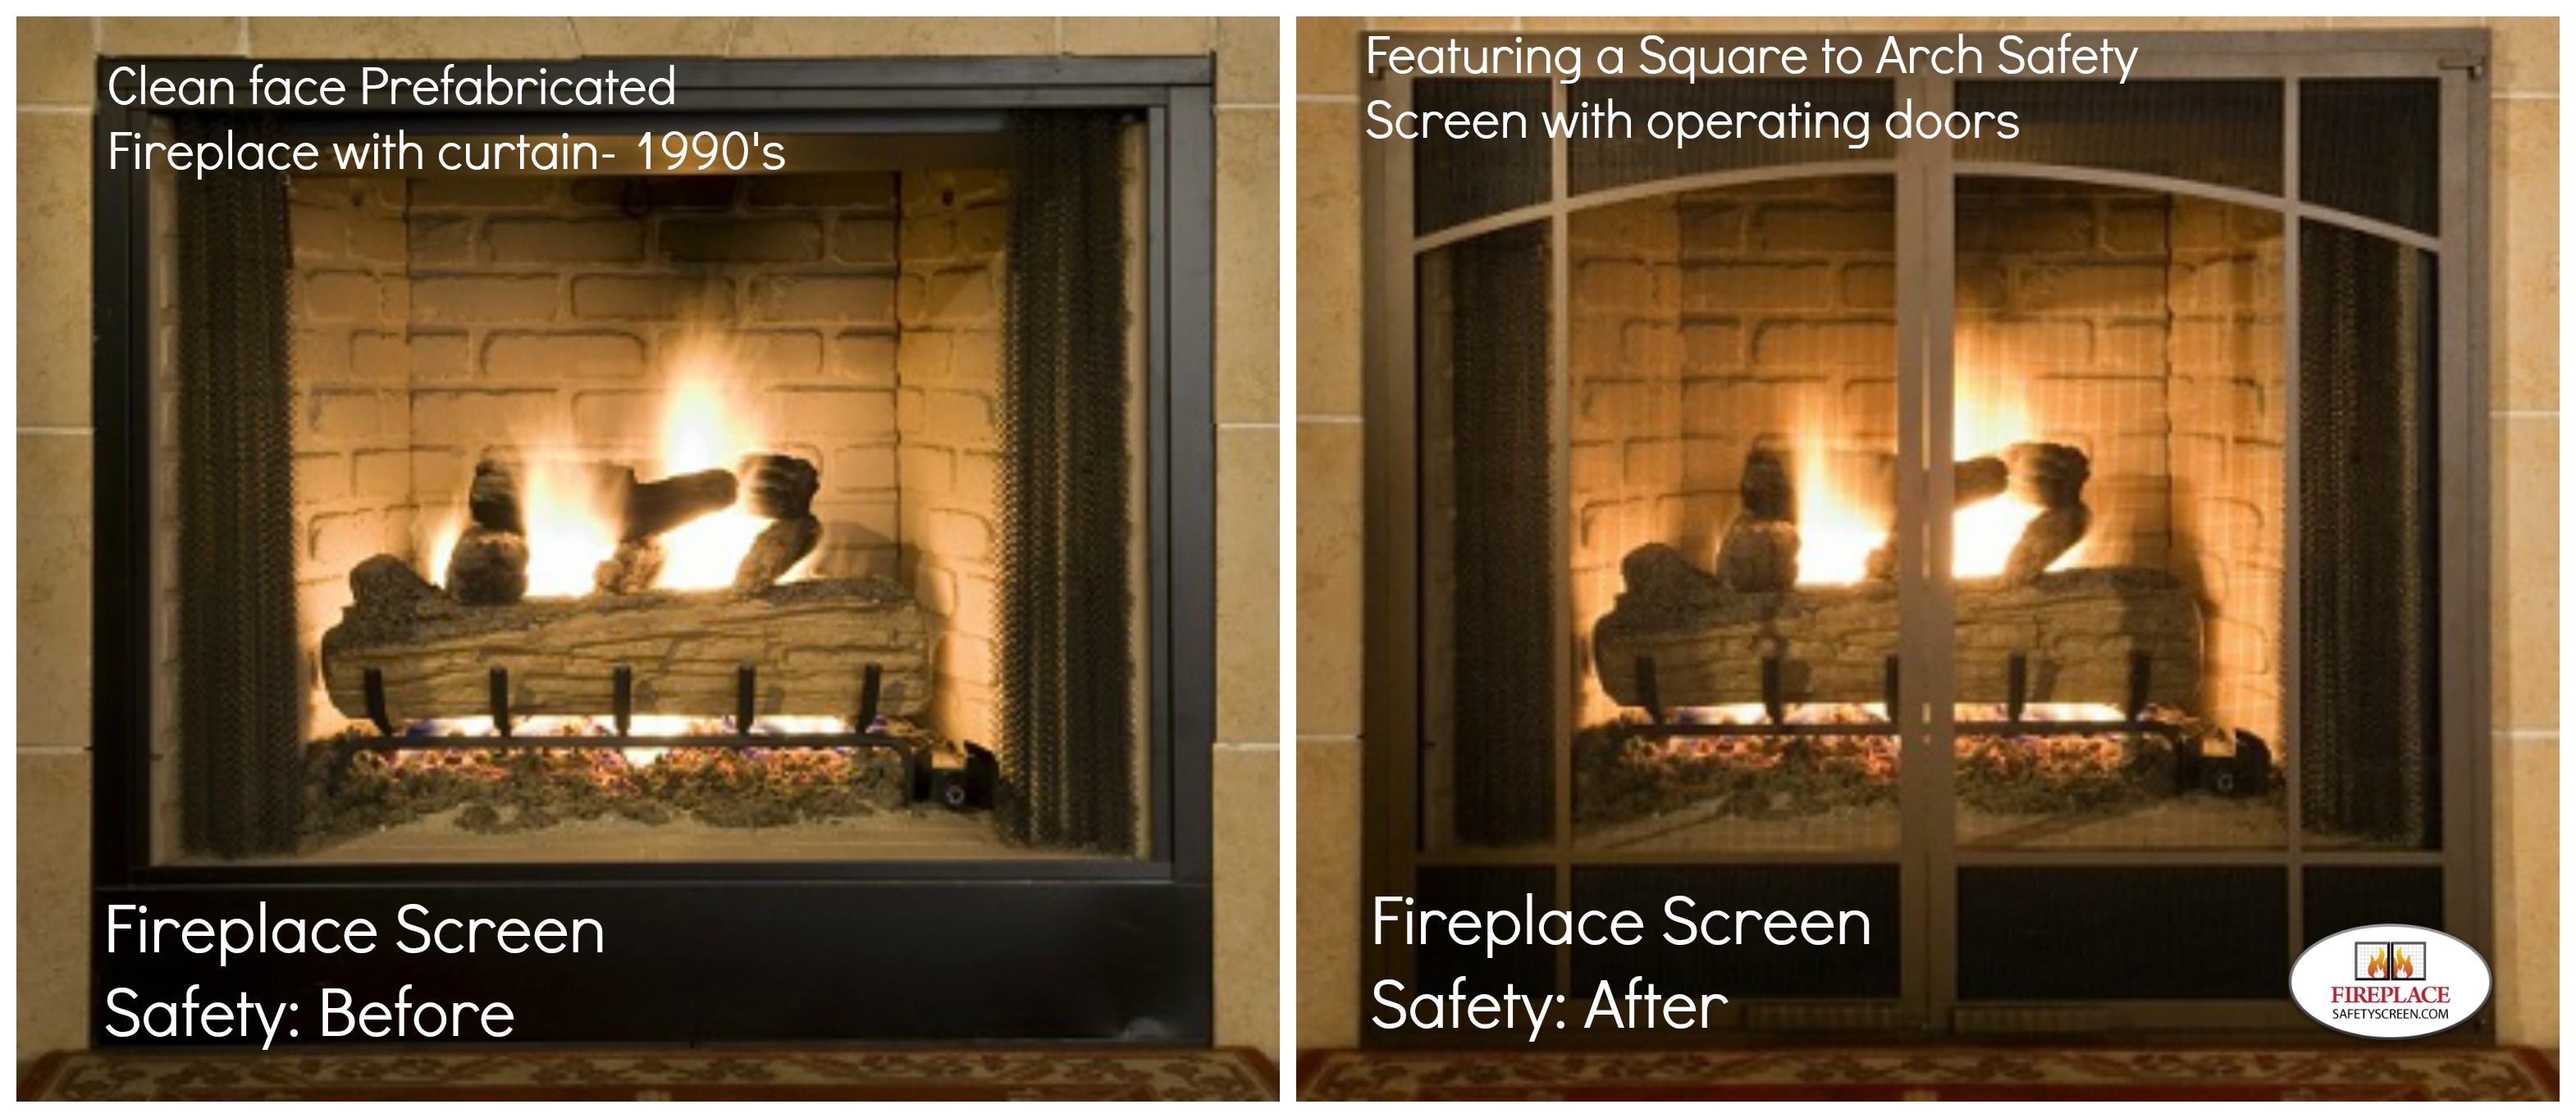 Beautiful fireplaces are made more stunning with screens that add a touch of elegance to any hearth and are also important for safety. See our favorites.